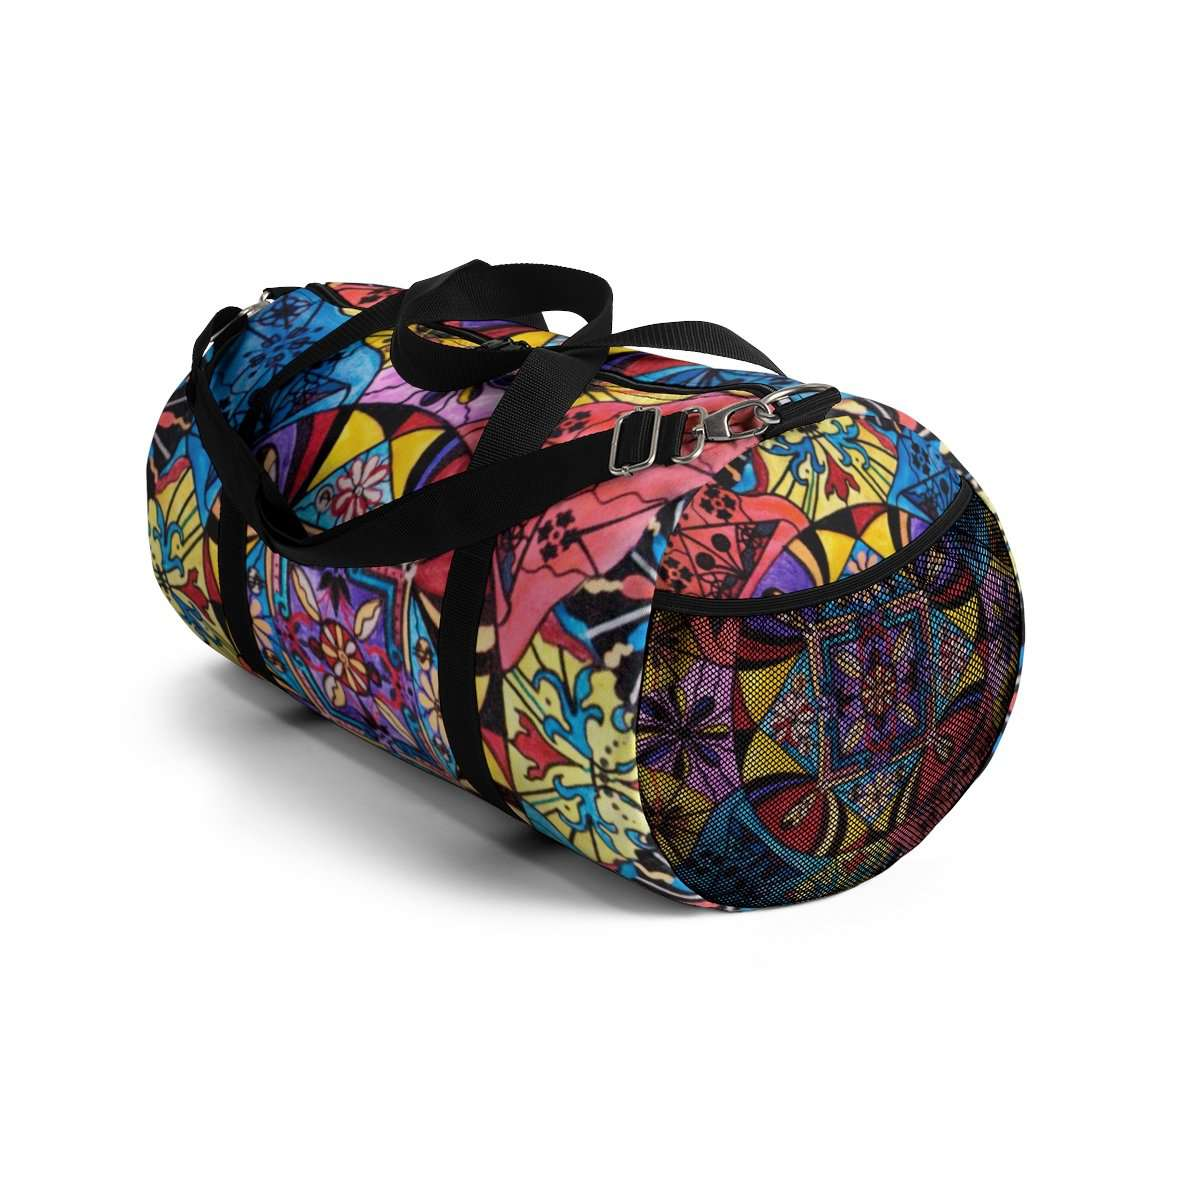 Worldly Abundance - Duffle Bag